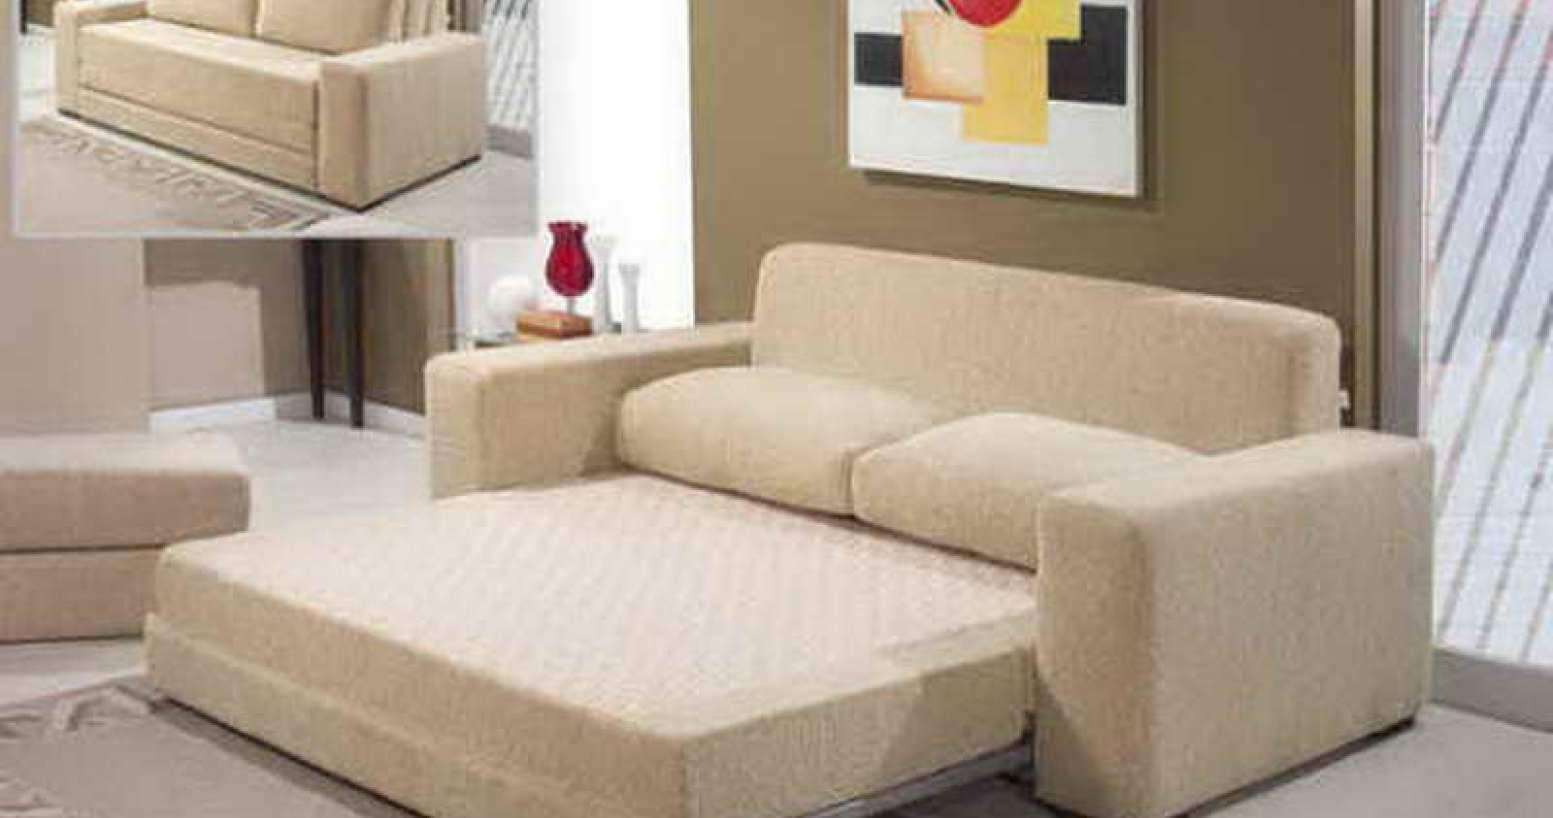 Sofa : Queen Sleeper Sofa Bed Sheets Sofas Home Decorating Ideas Pertaining To Queen Size Sofa Bed Sheets (View 17 of 21)